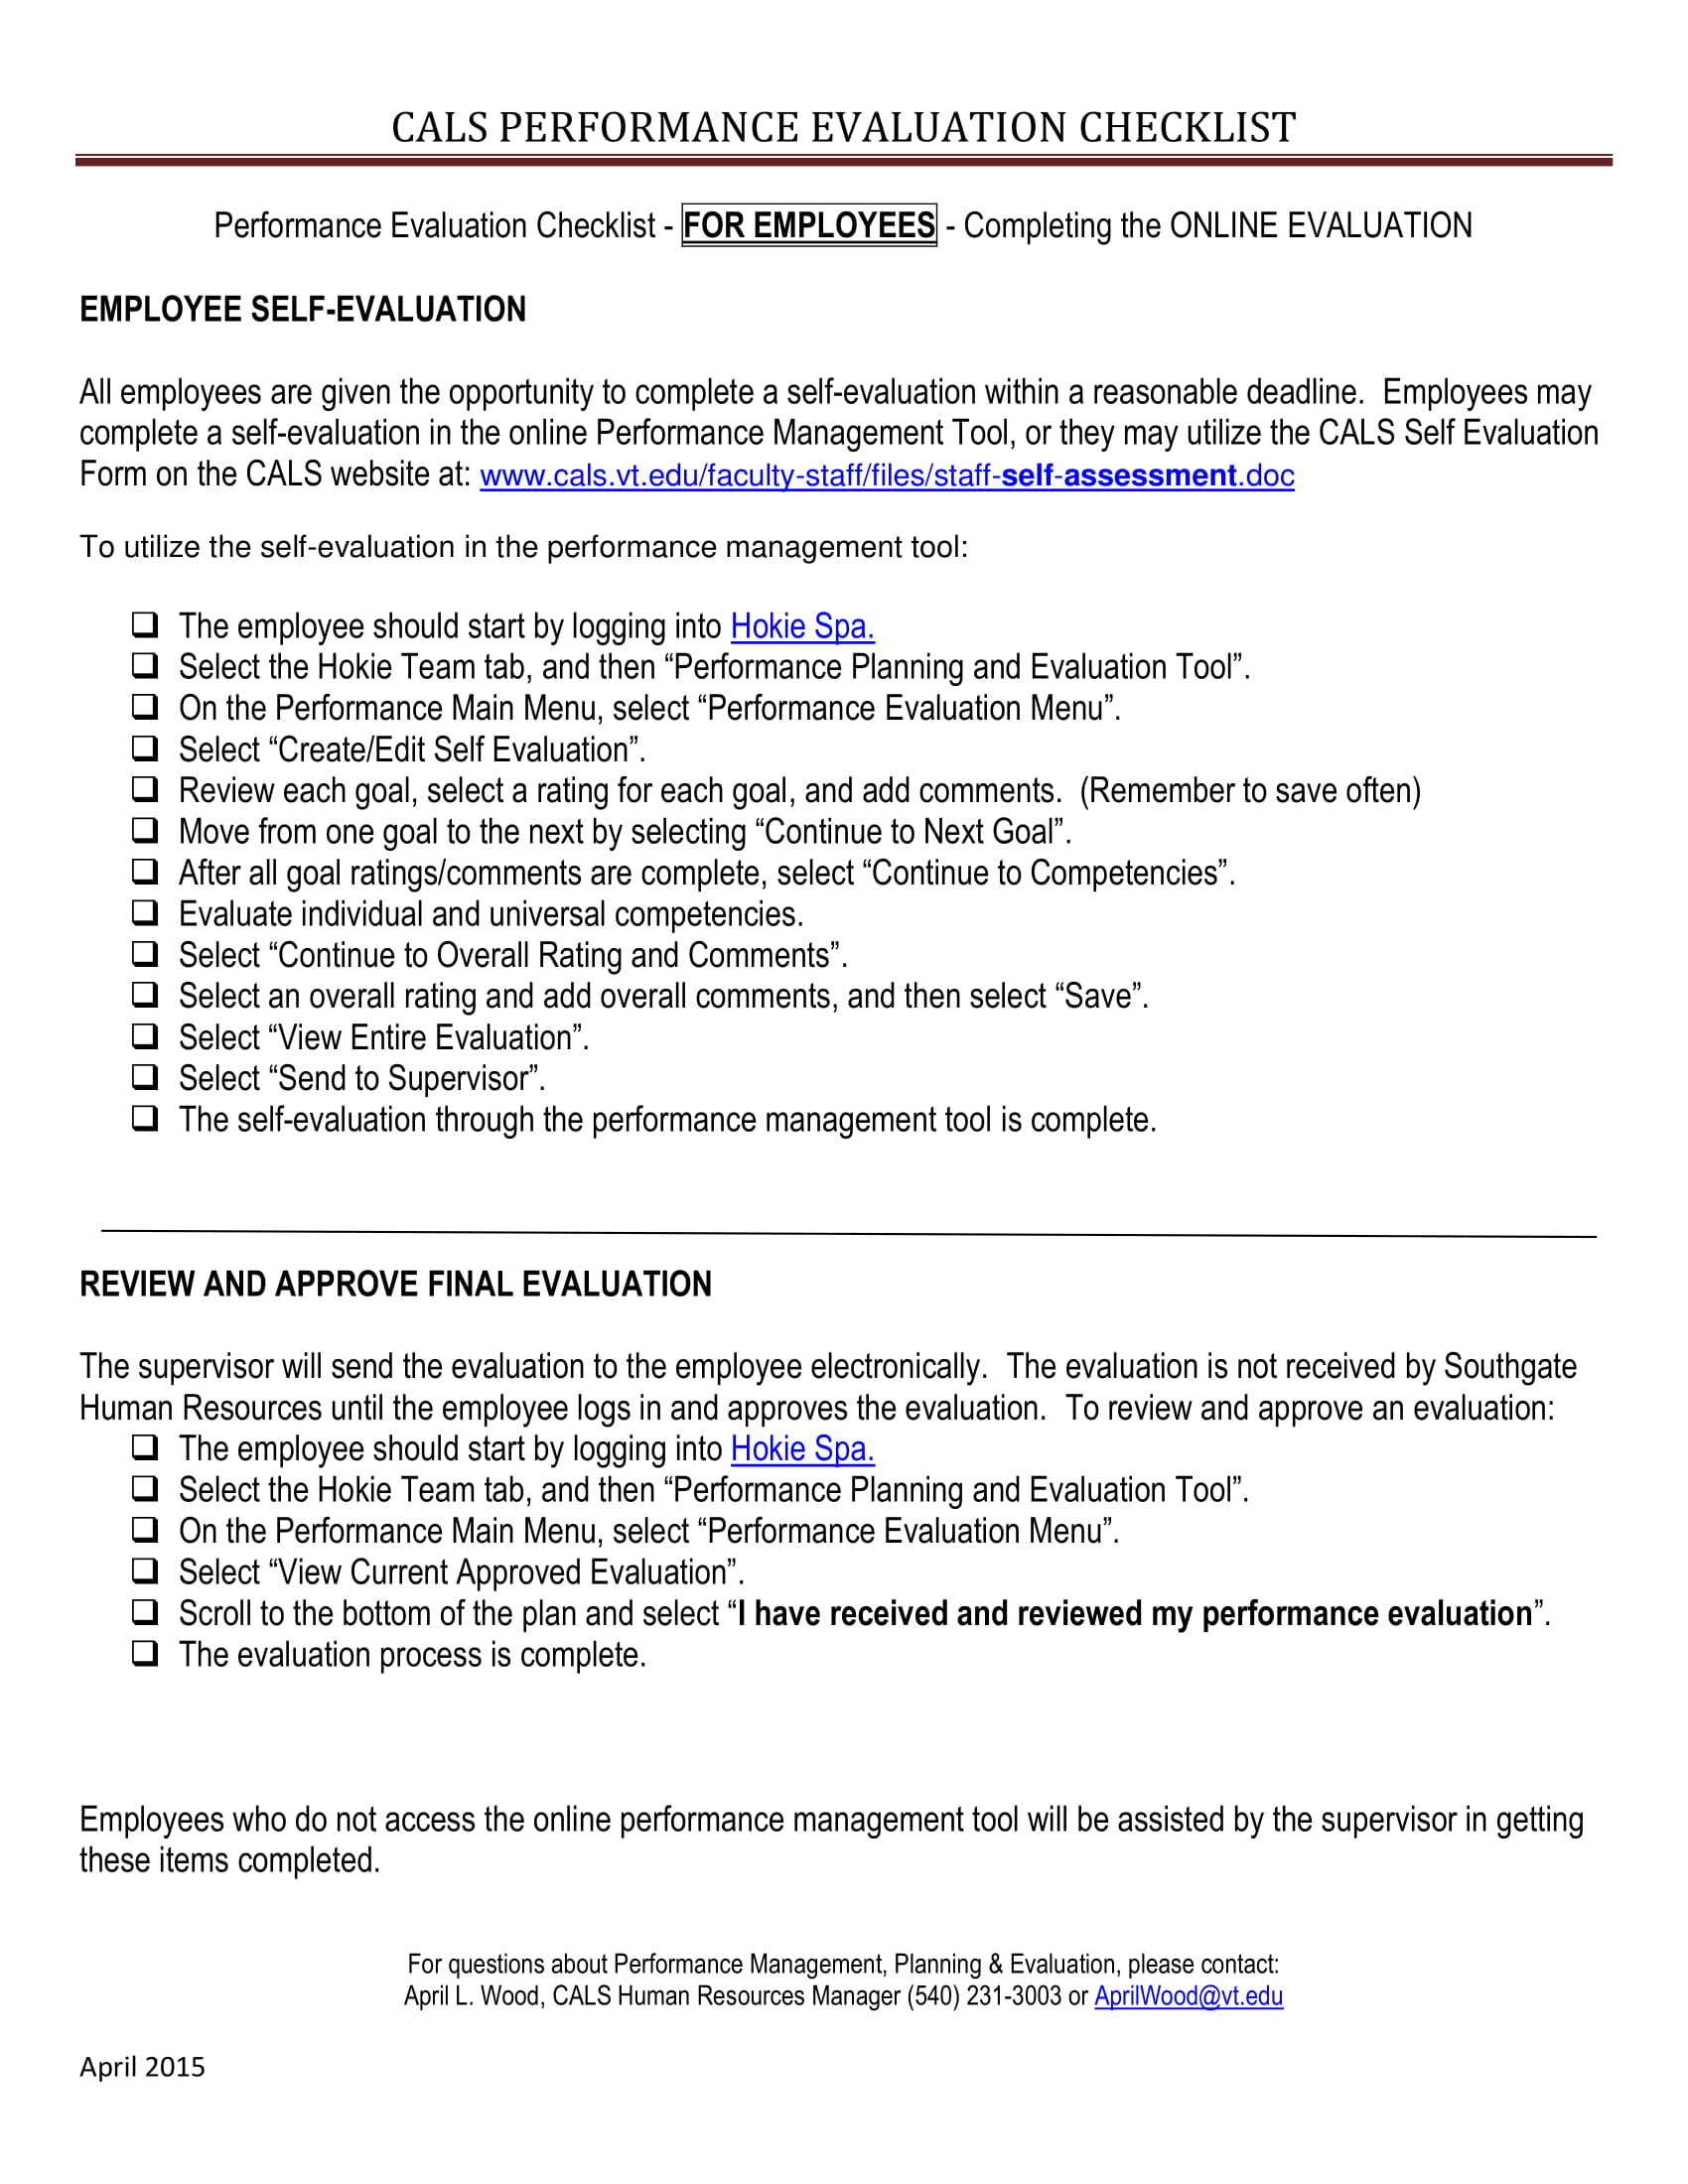 evaluation checklist employees 1